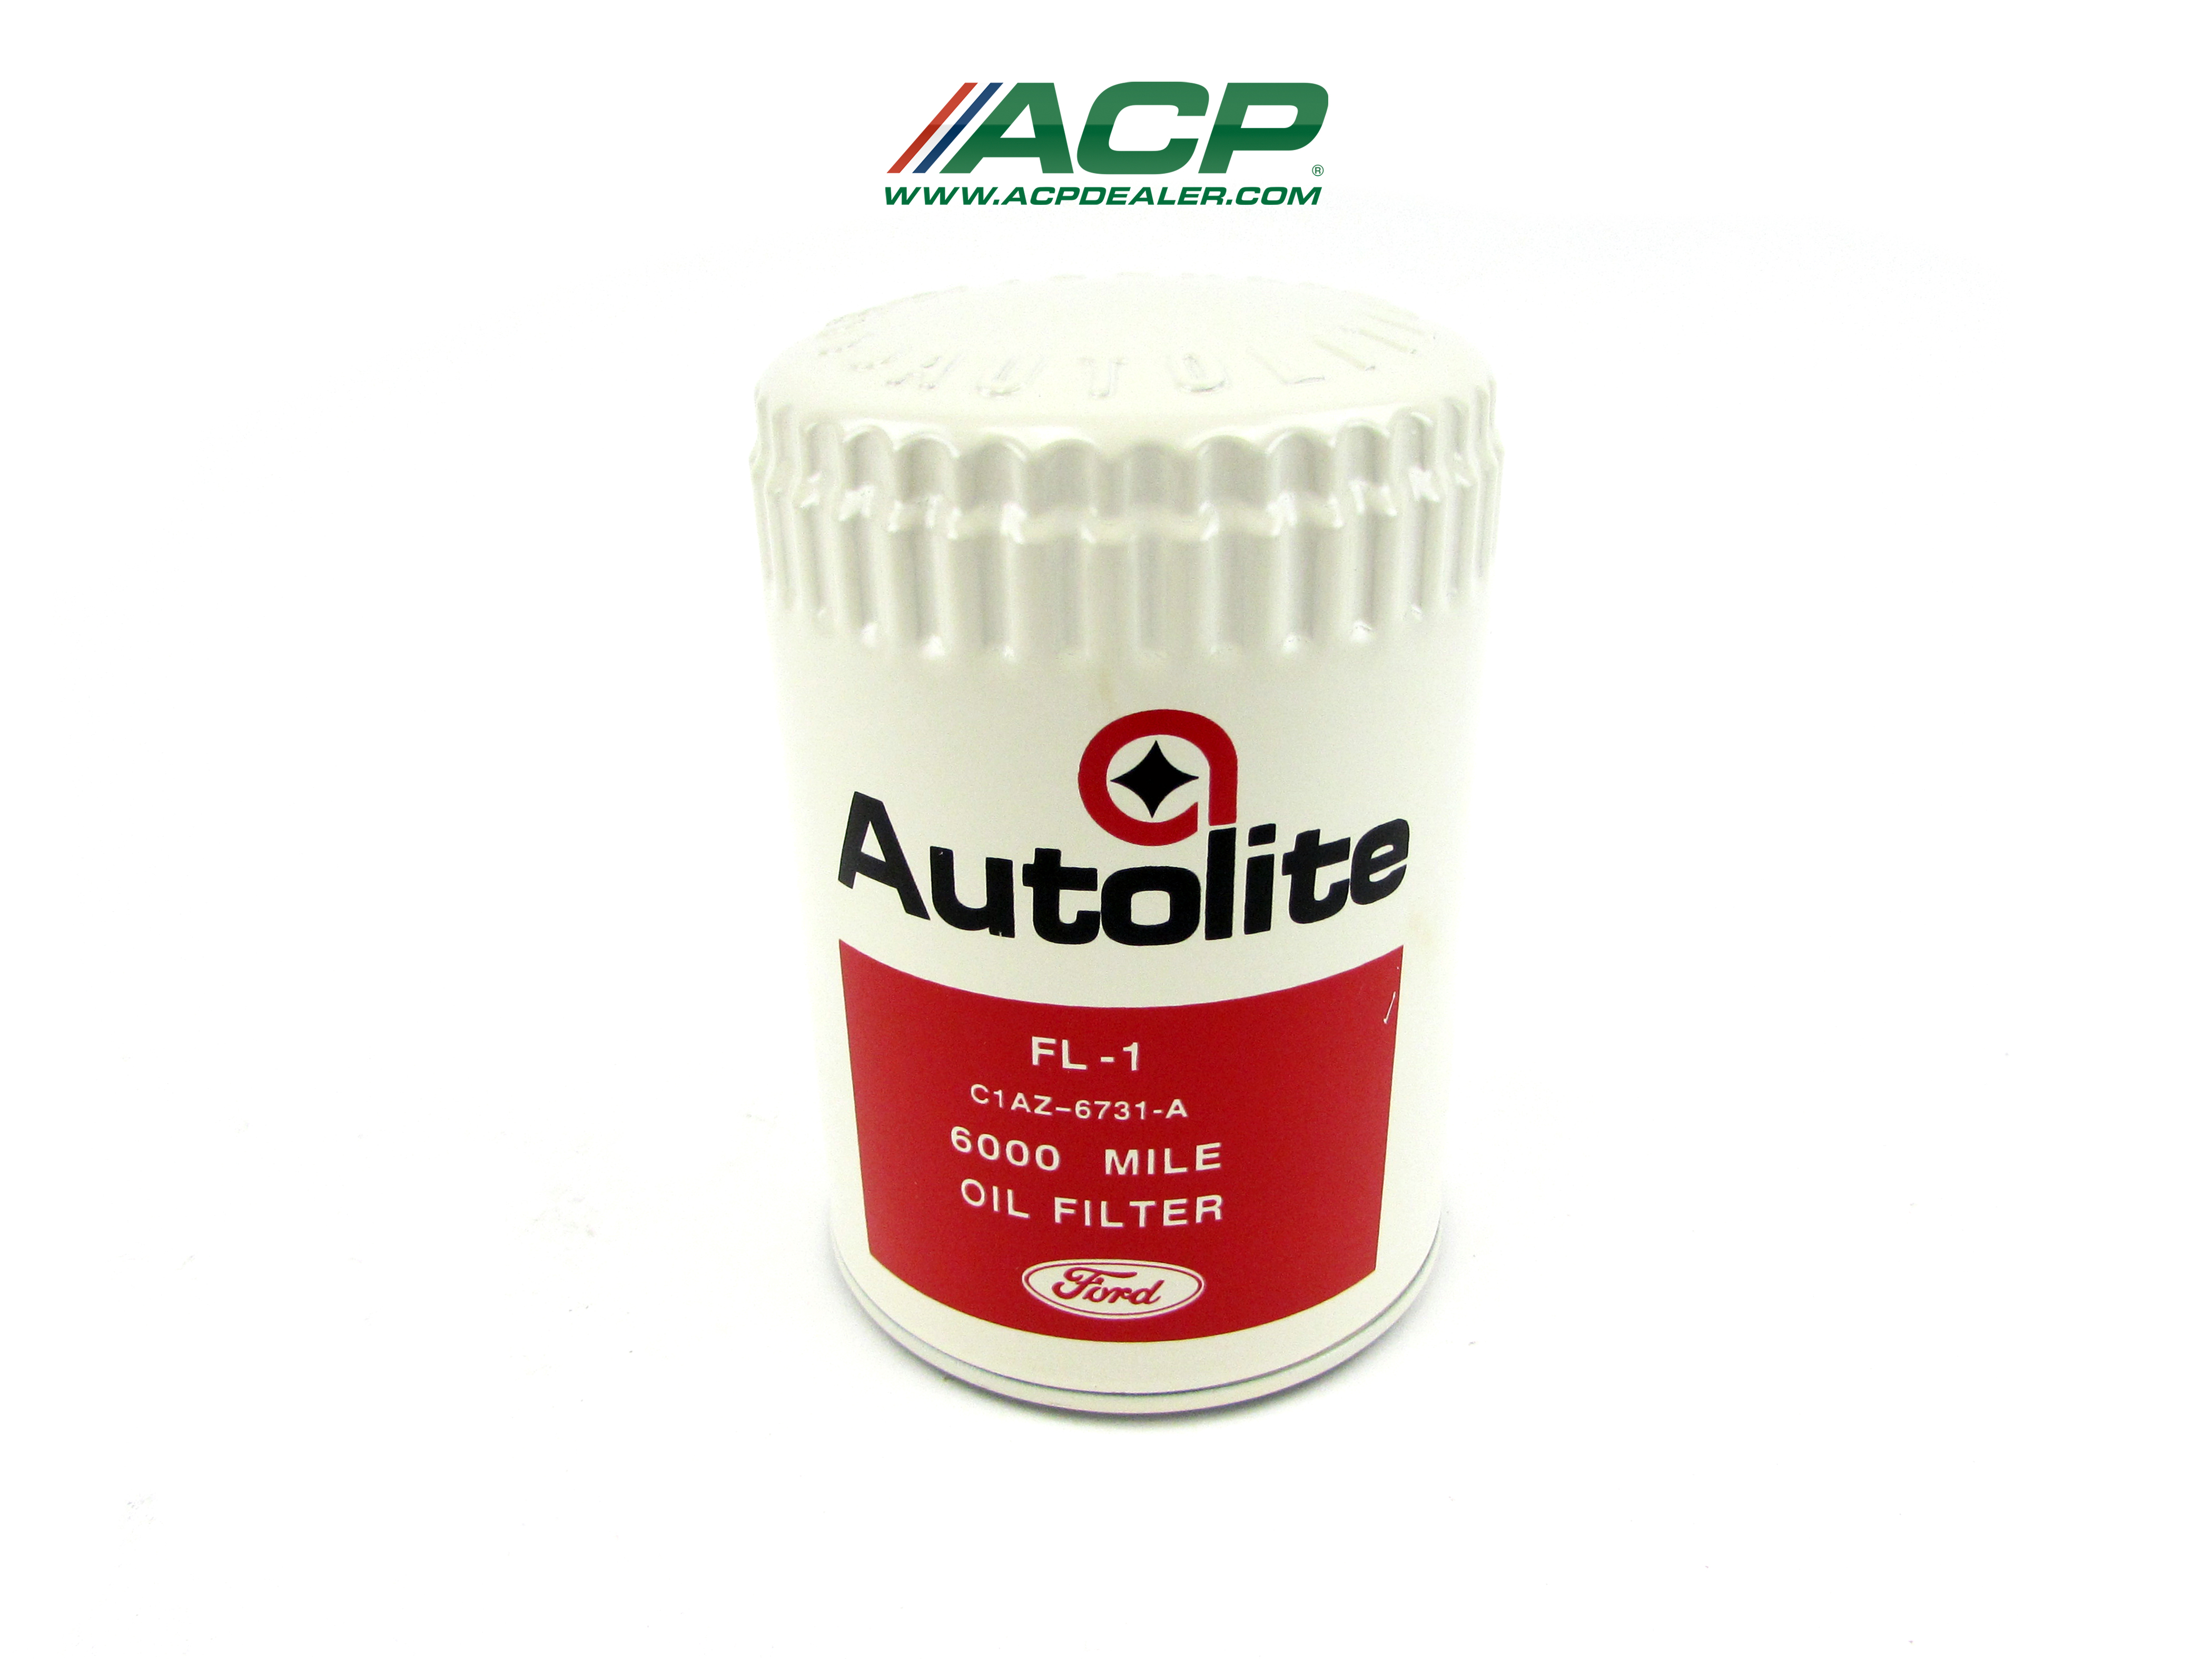 1967 Ford Mustang Autolite Ford Script, White/Red w/ Star Reproduction Oil Filter